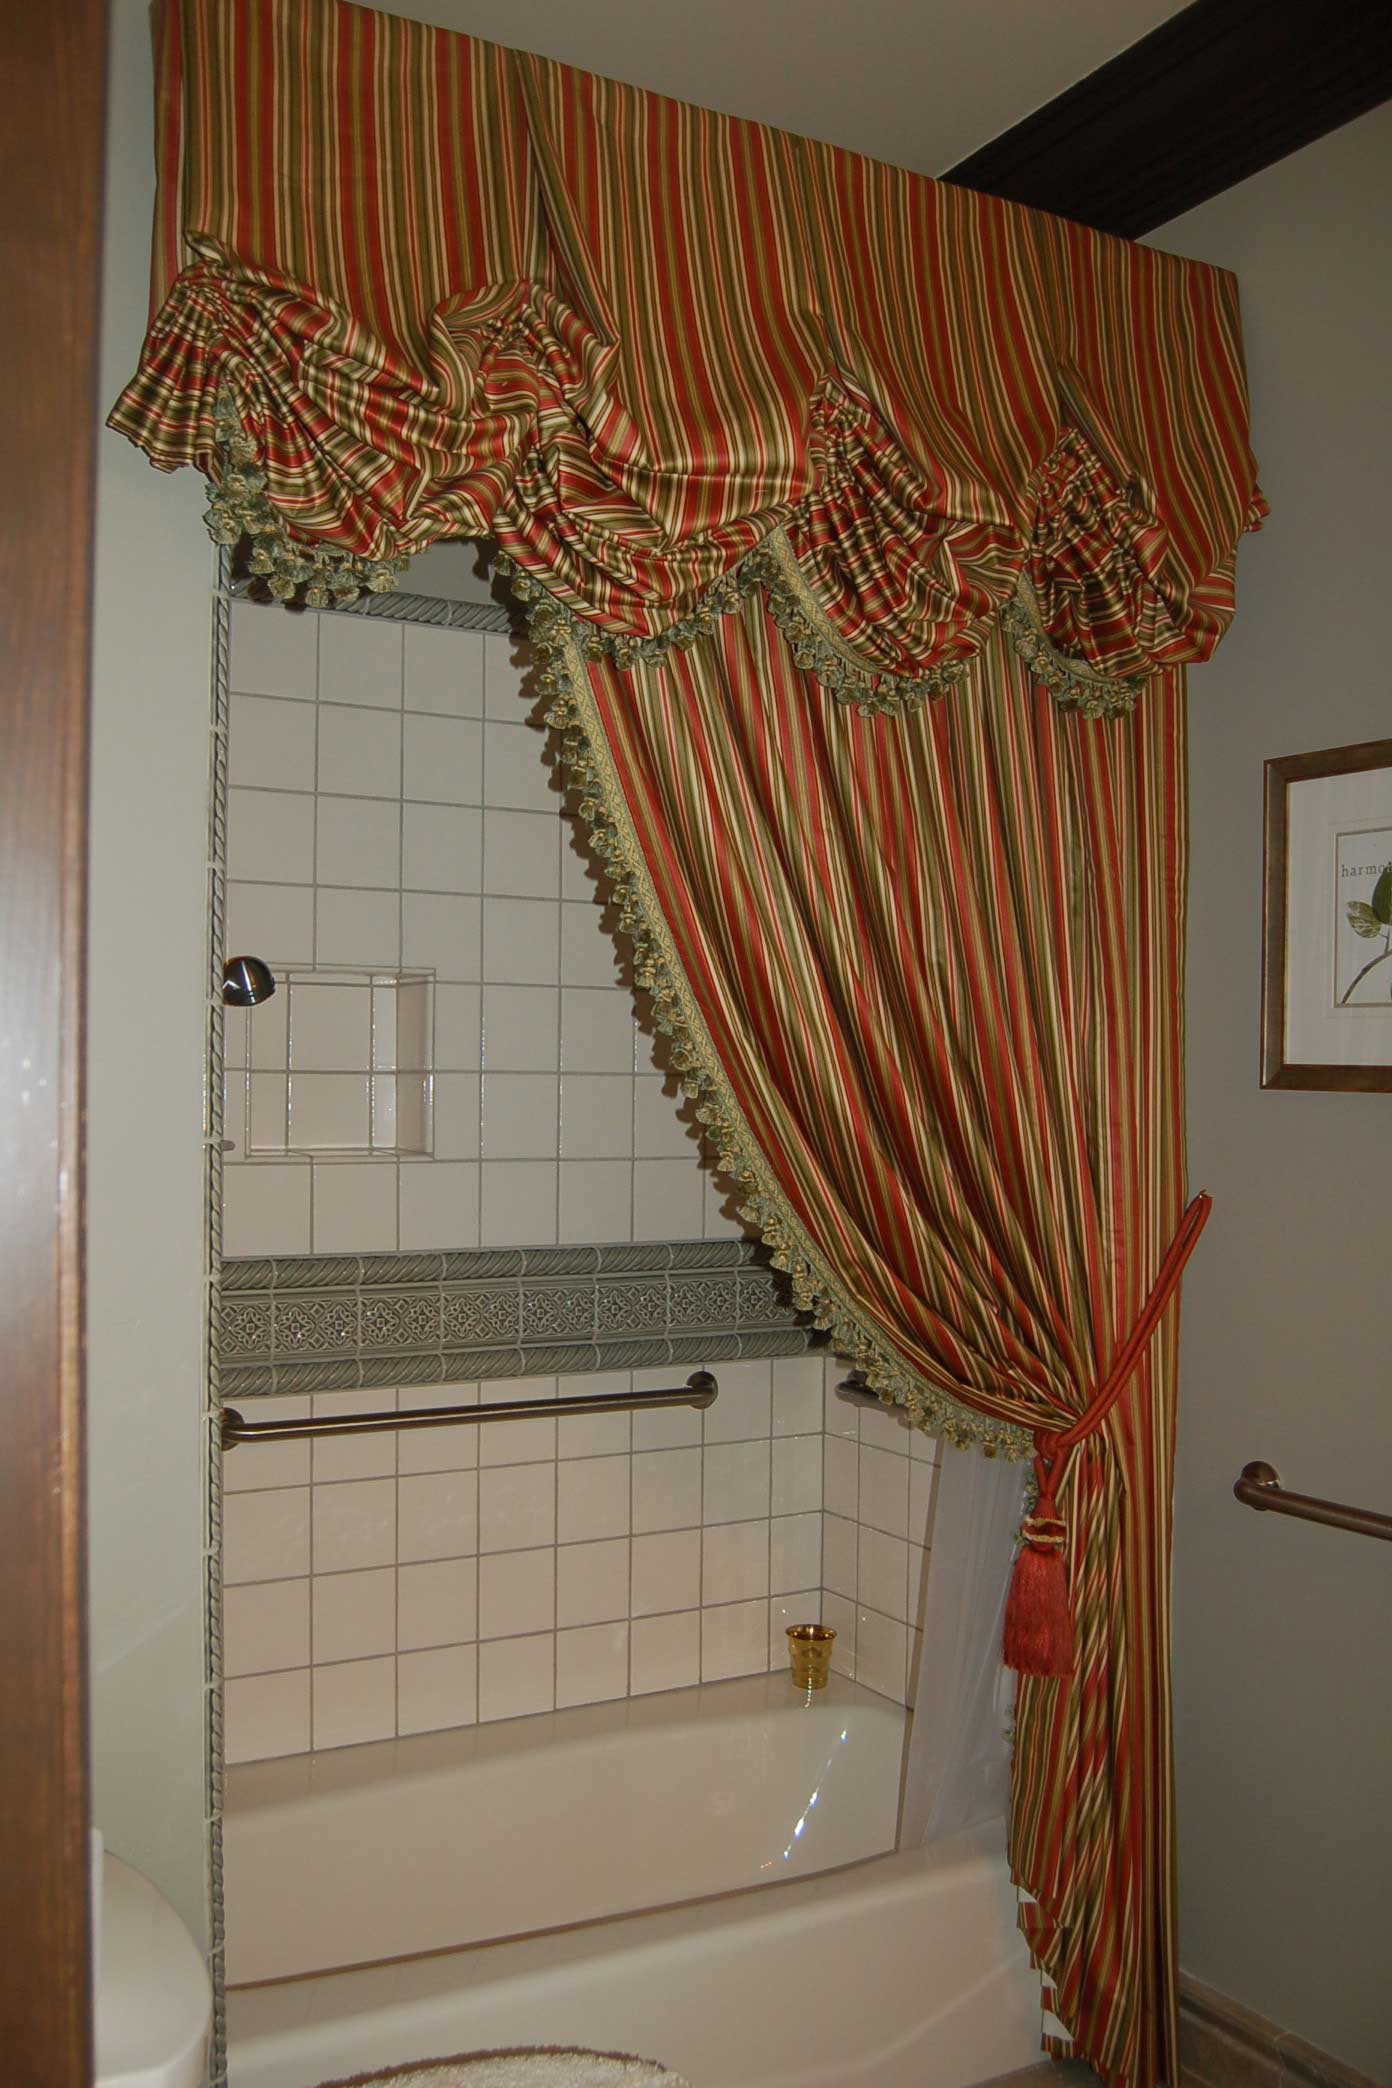 bathtub with partially covering curtain